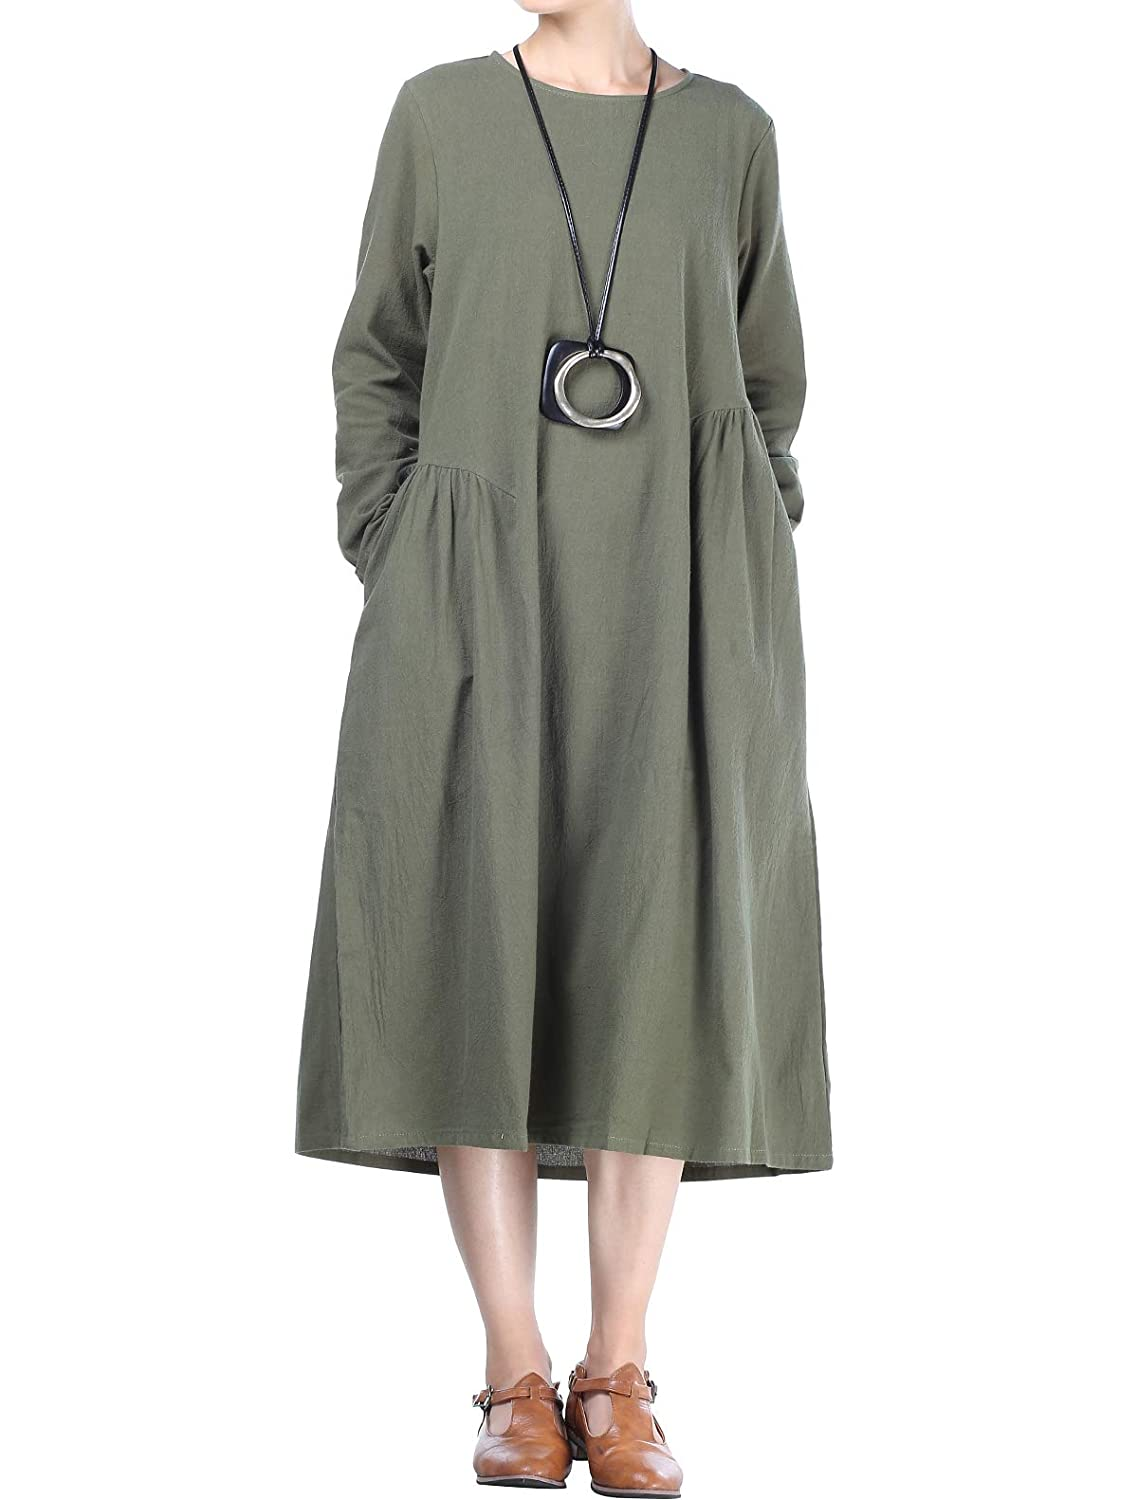 e92ae51673 Mordenmiss Women s Cotton Linen Dresses Fall Loose Fit Basic Dress with  Pockets (L Army Green) at Amazon Women s Clothing store